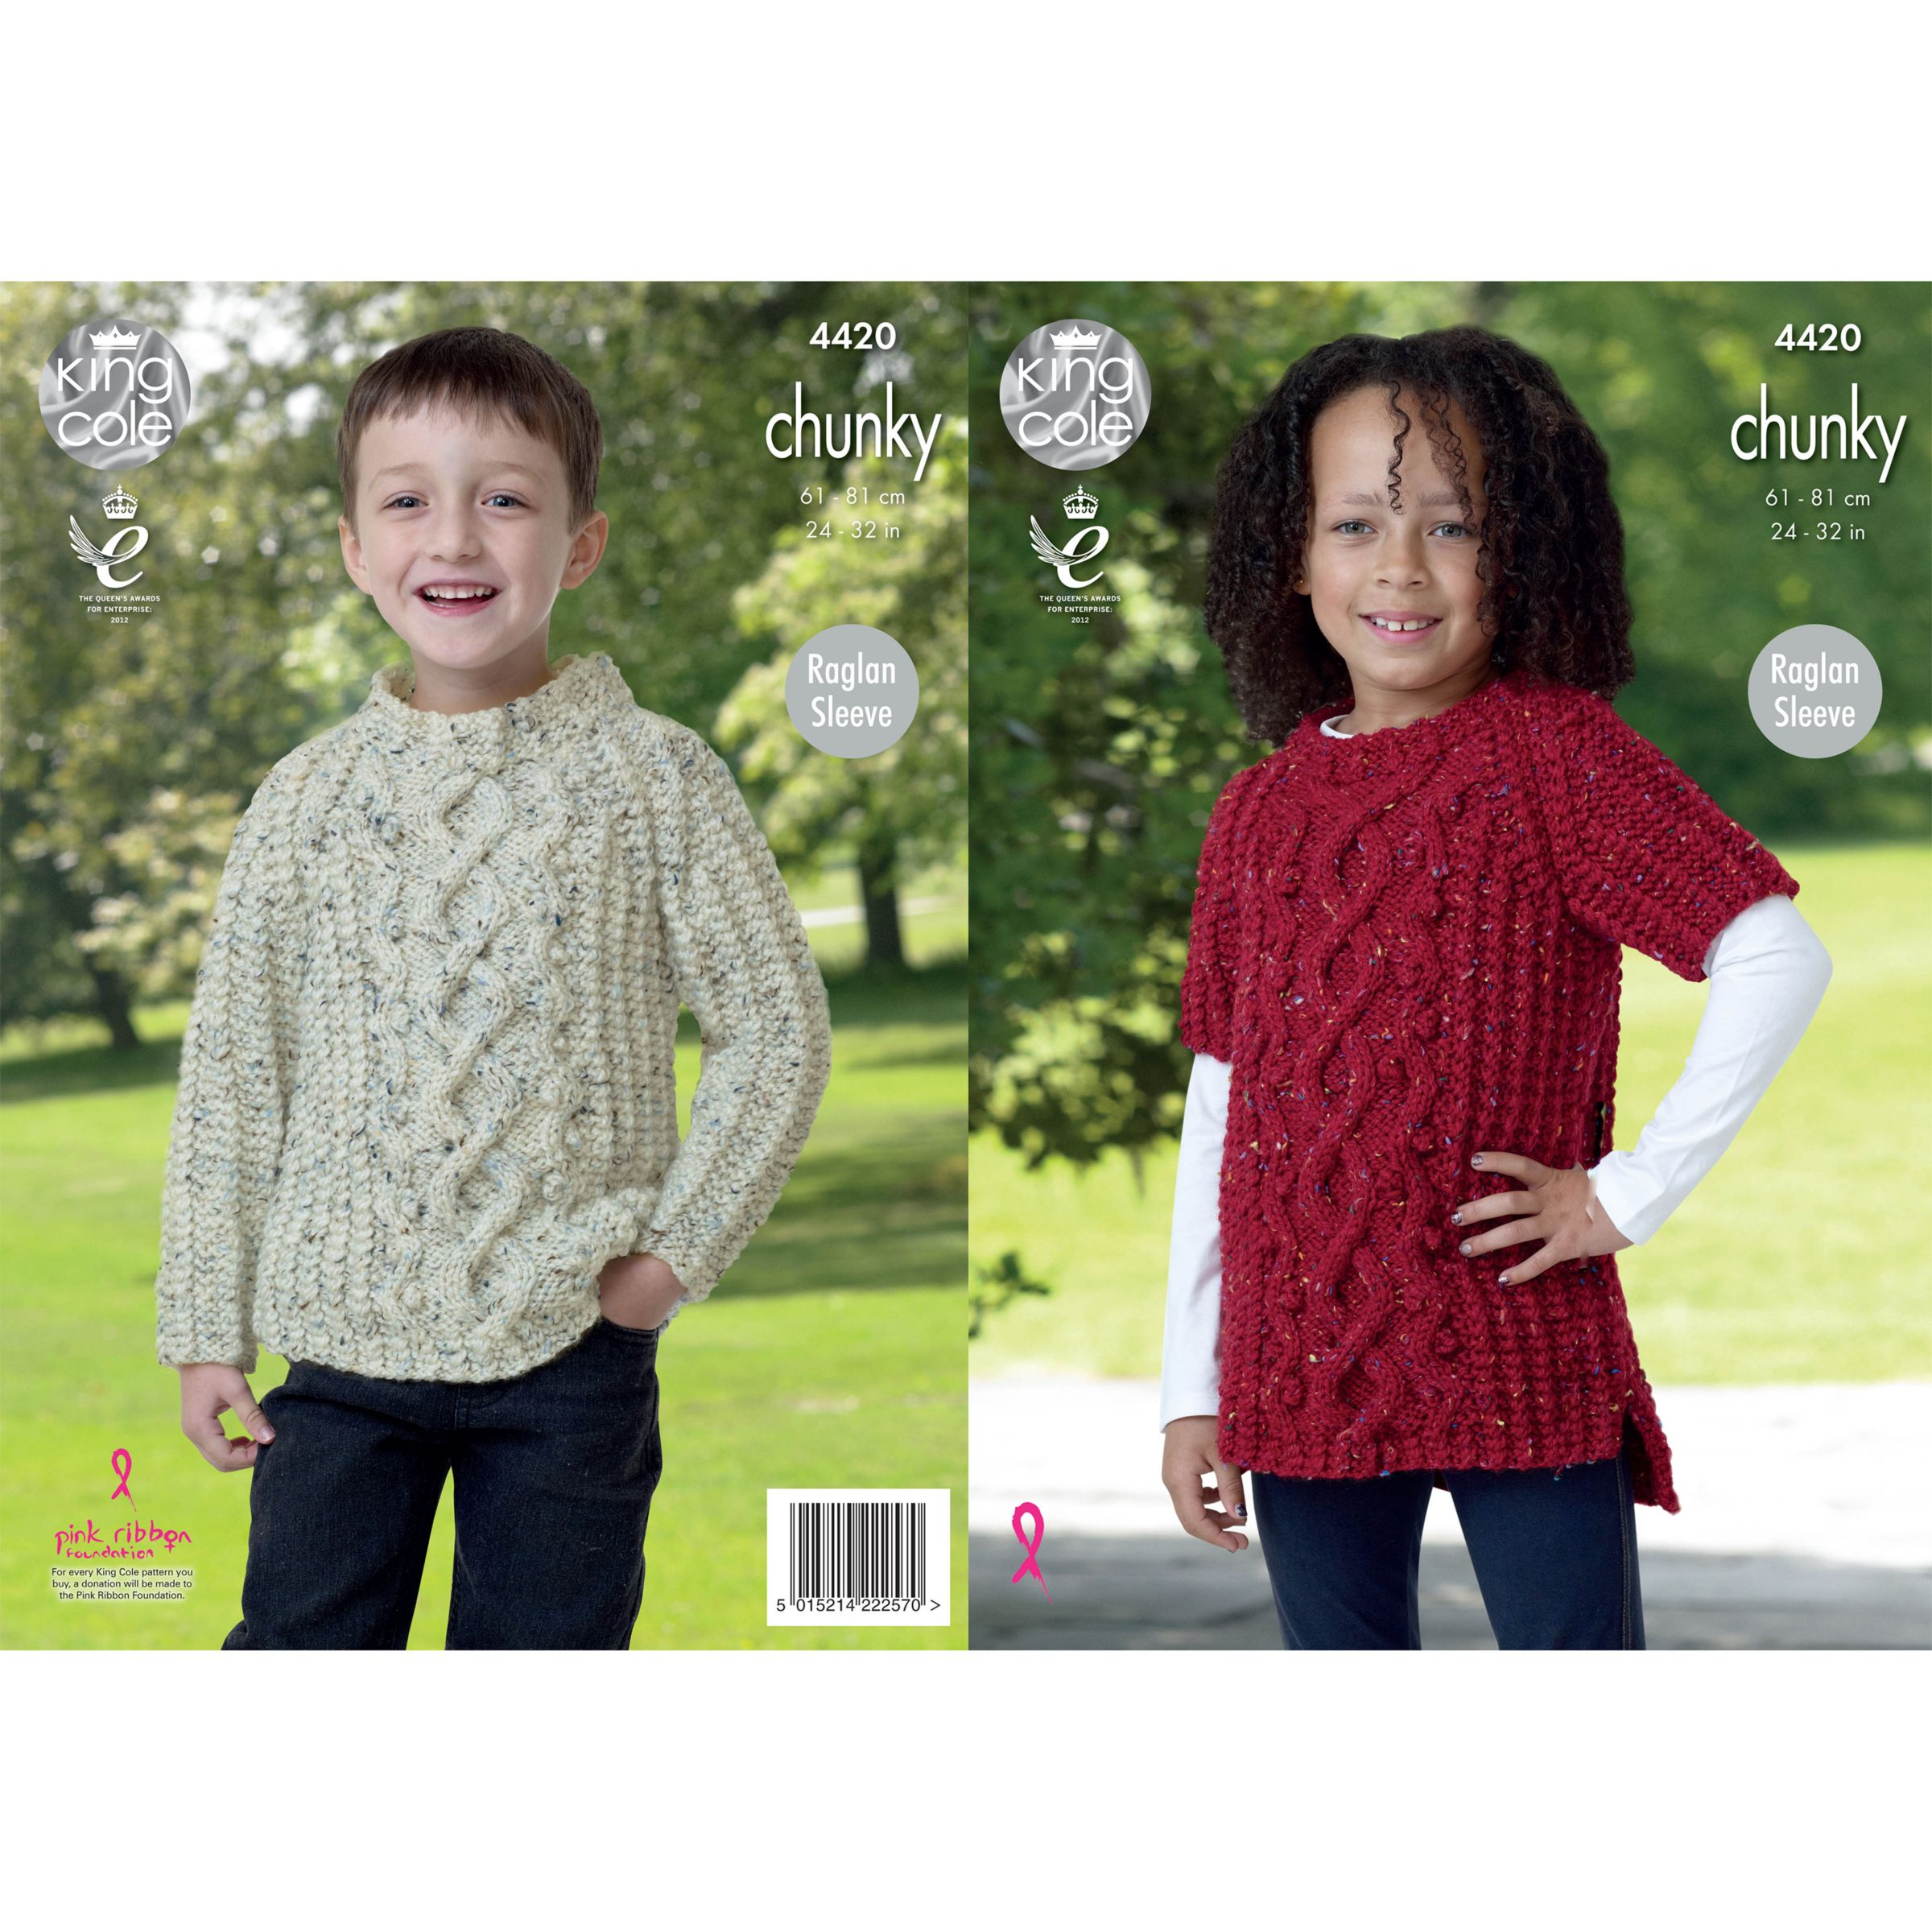 Knitting Patterns Childrens Jumpers : Buy King Cole Chunky Childrens Jumper Knitting Pattern, 4420 John Lewis